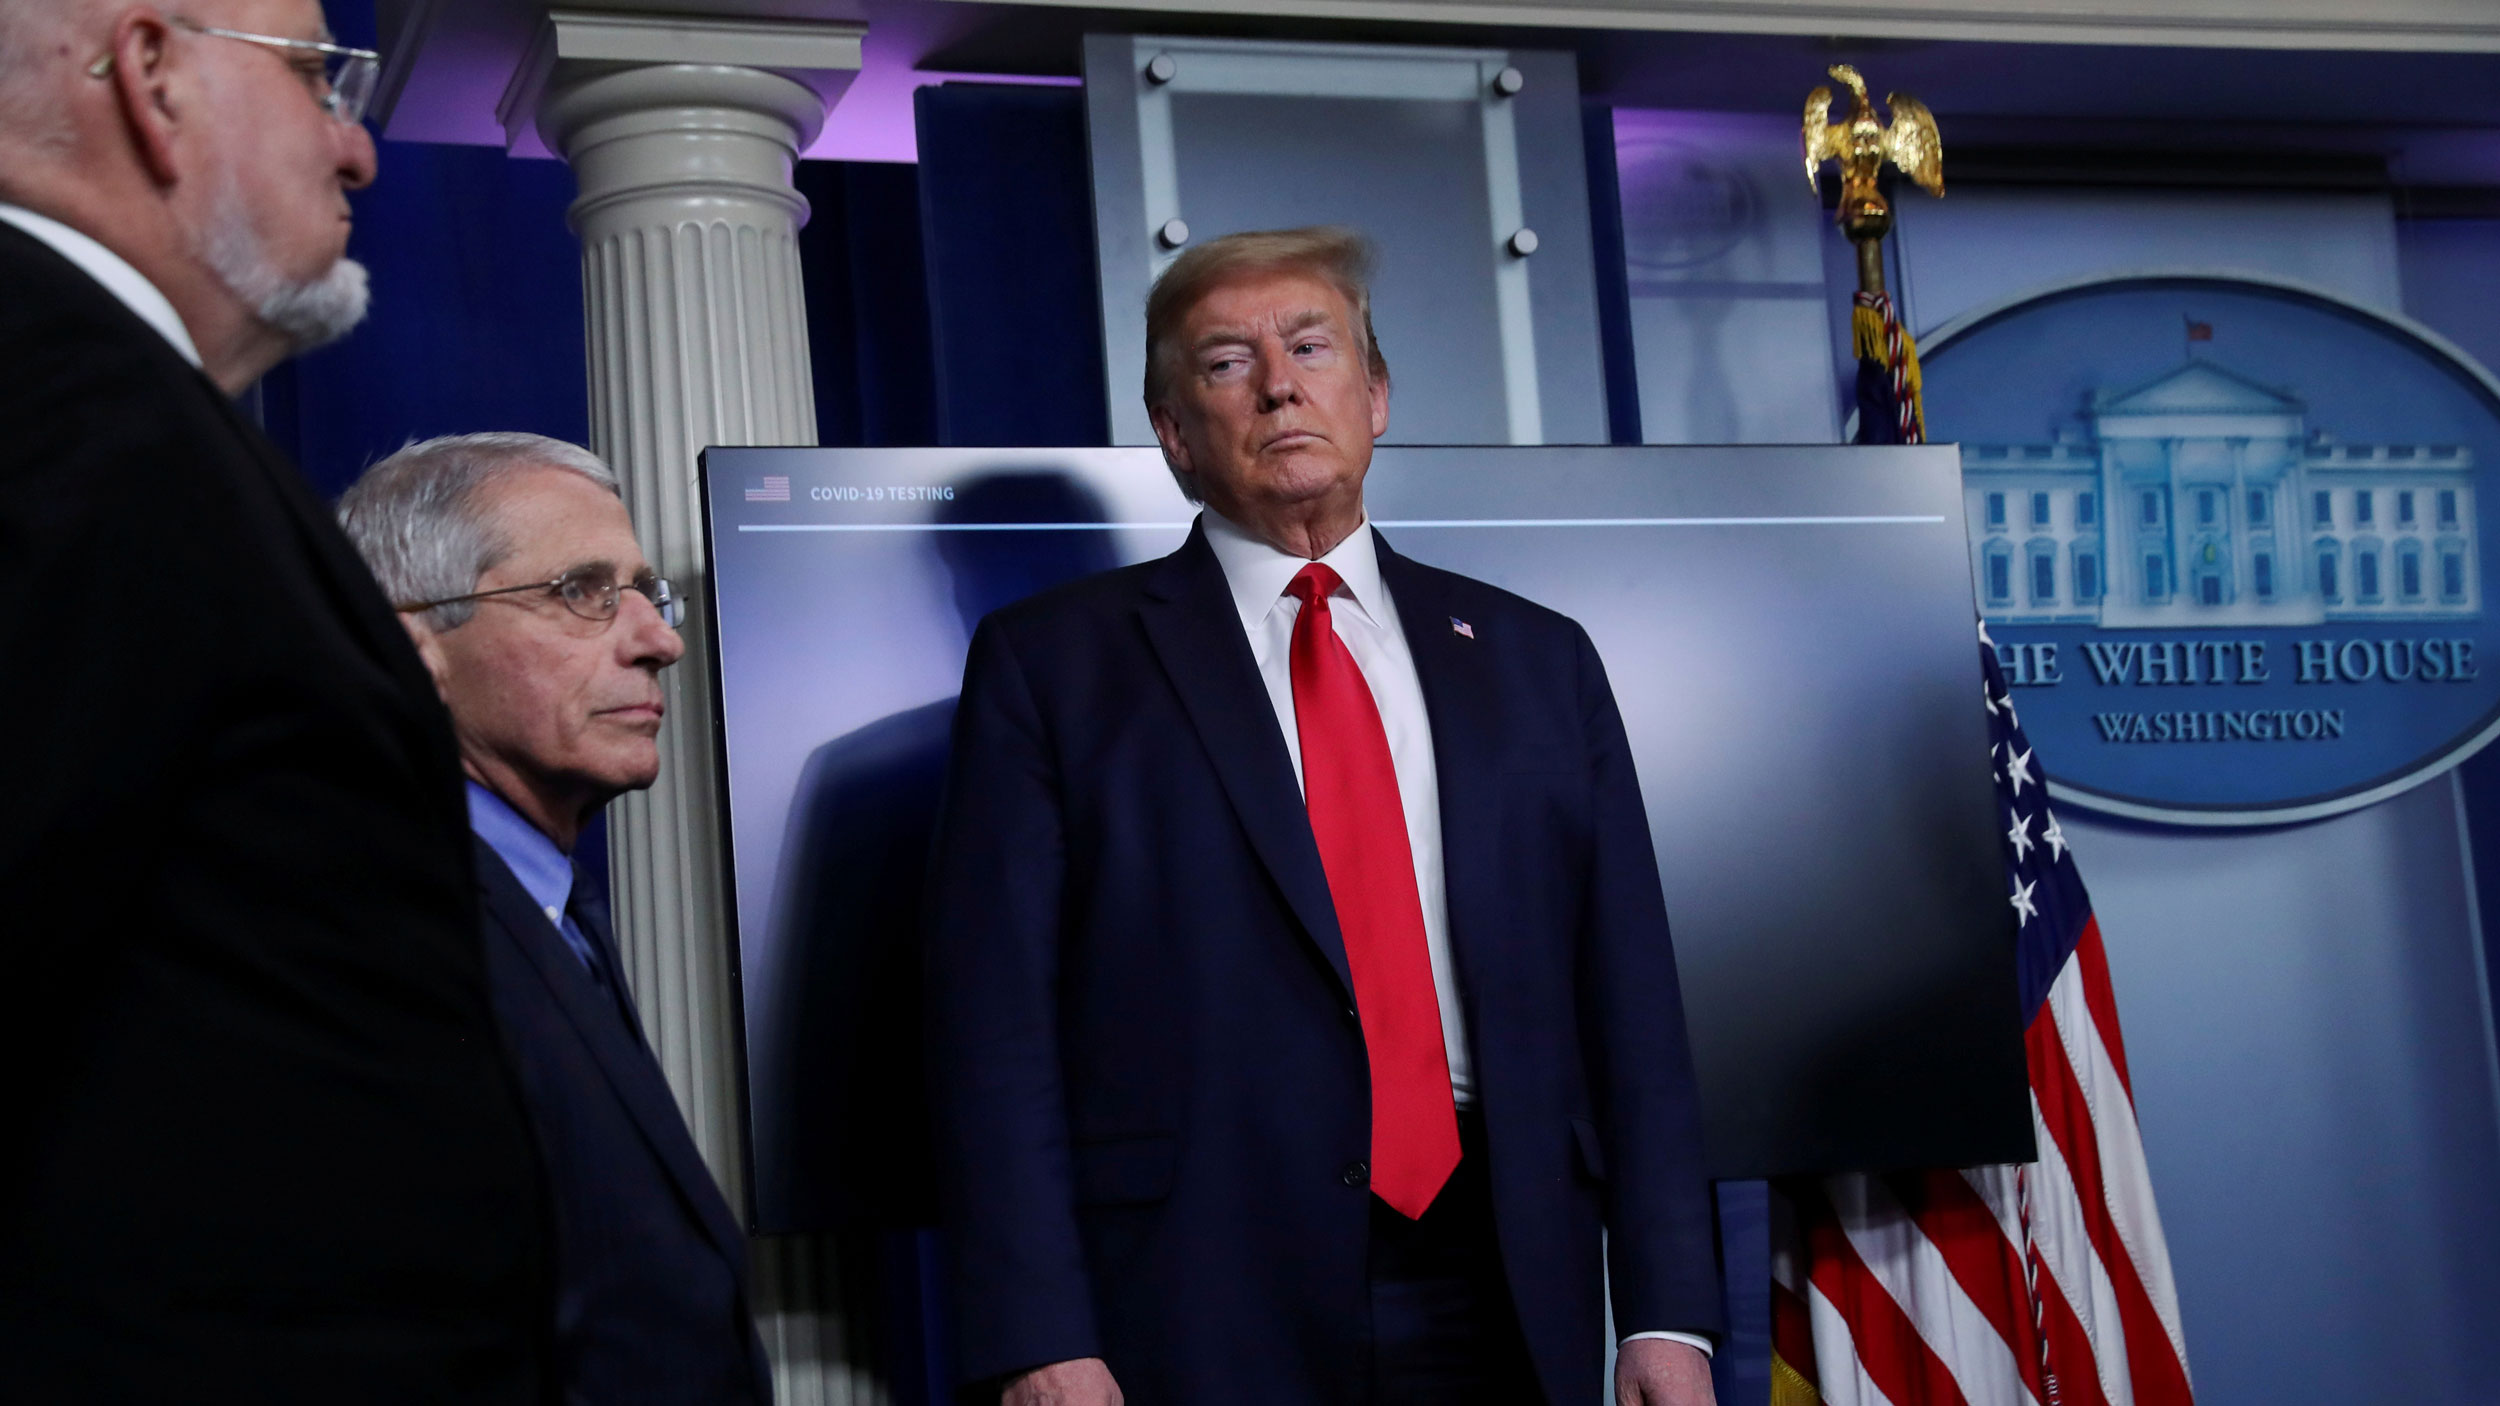 US President Donald Trump is shown wearing a dark suit and red tie and looking to his right at National Institute of Allergy and Infectious Diseases Director Dr. Anthony Fauci.